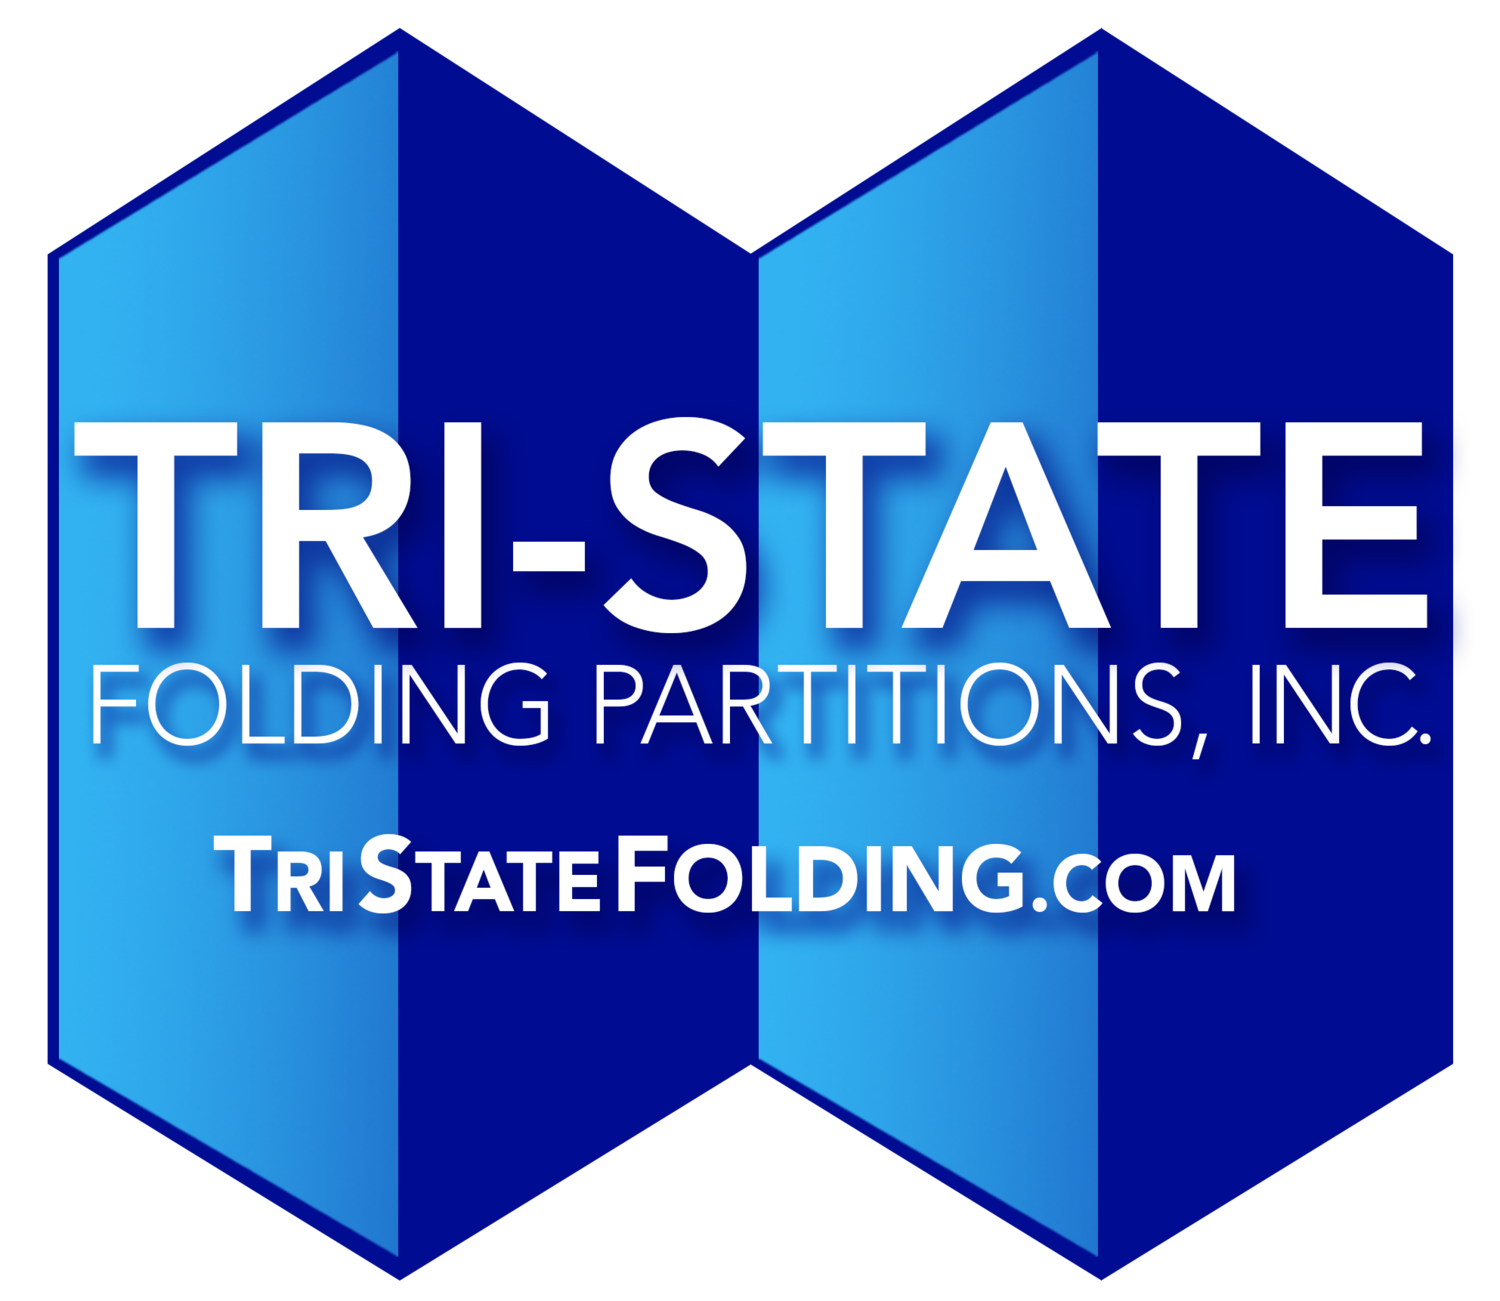 tri-state-folding-partitions-logo